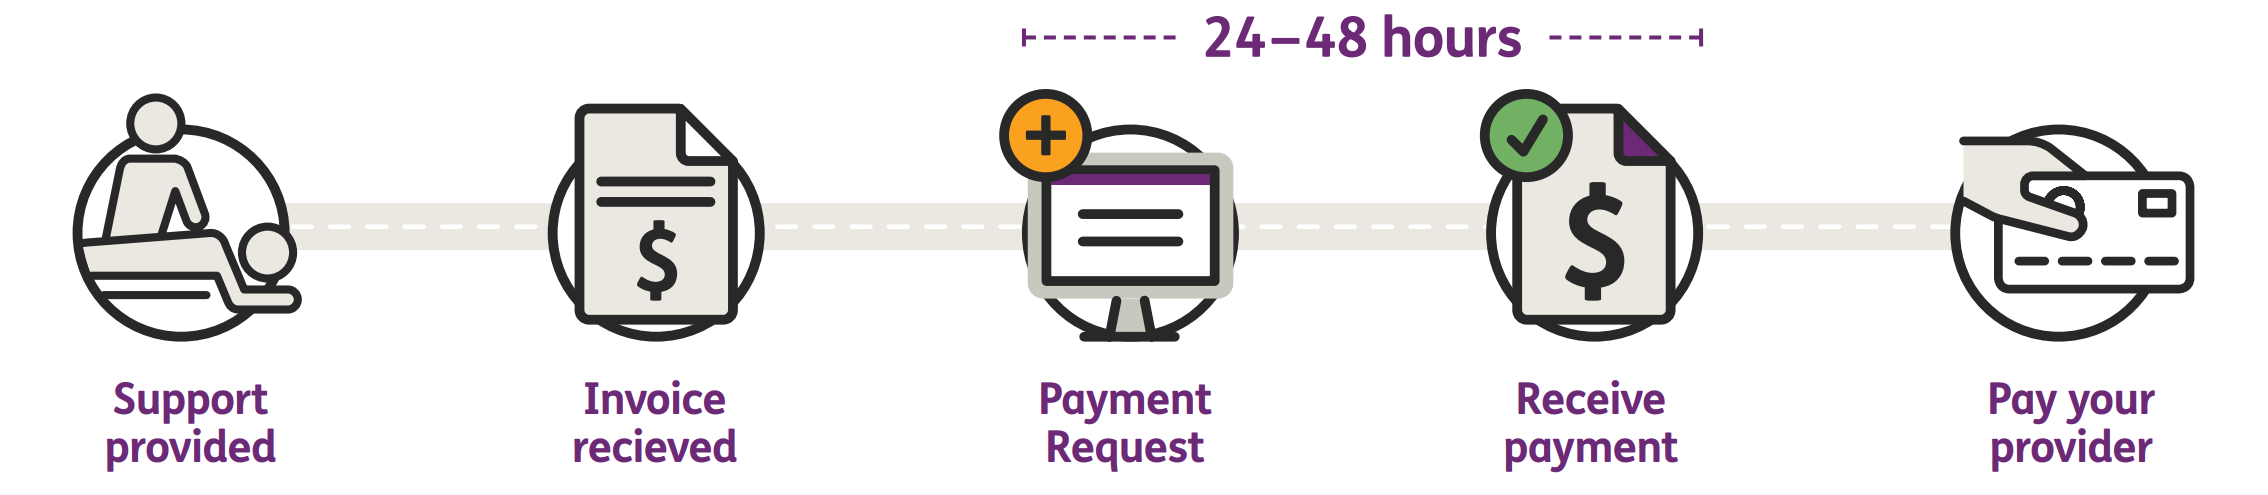 support provided icon - invoice received icon - payment request icon - receove payment icon - pay provider icon  icon